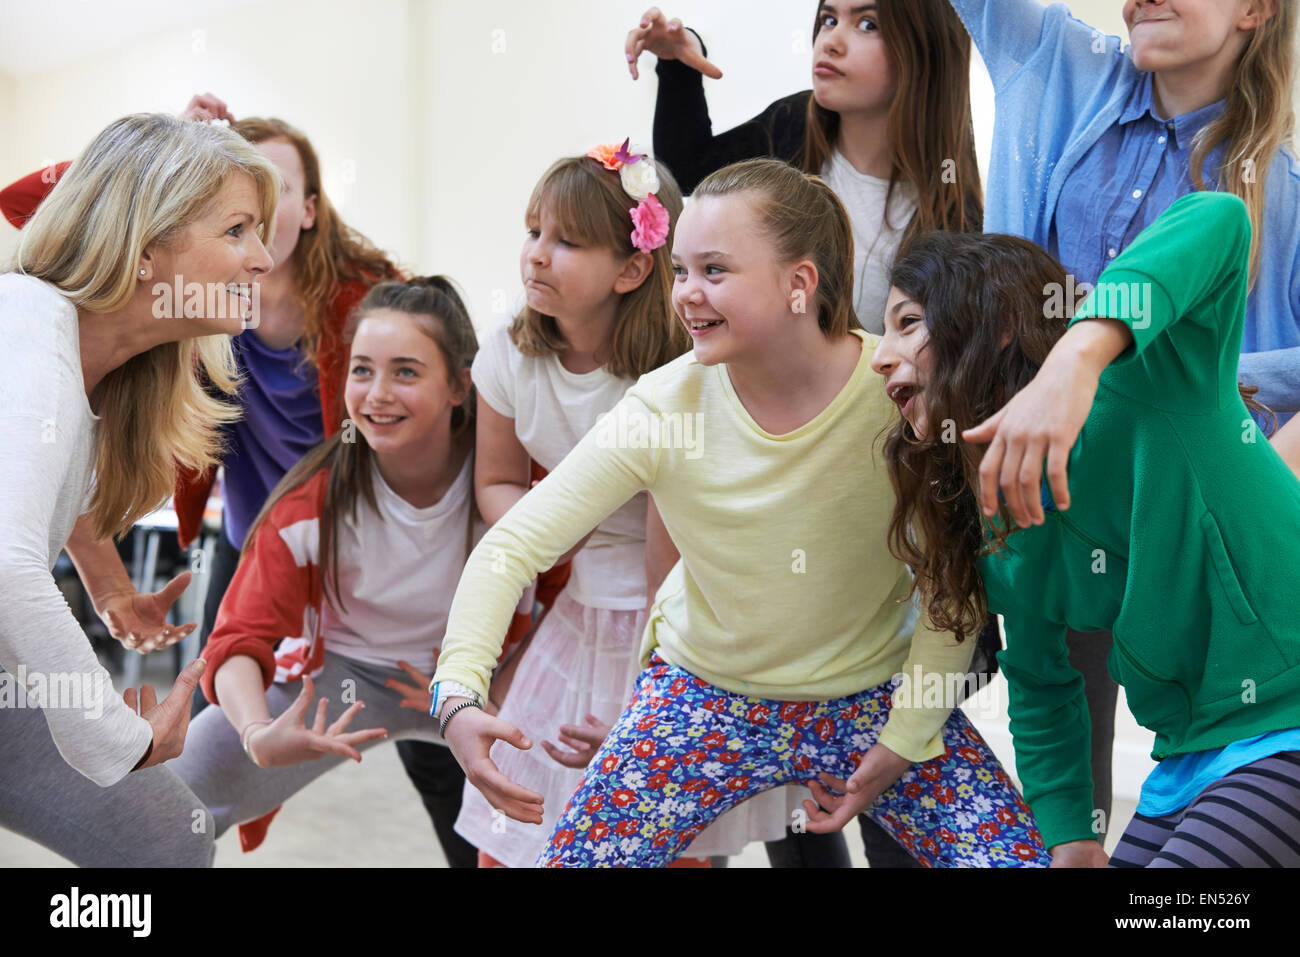 Group Of Children With Teacher Enjoying Drama Class Together - Stock Image